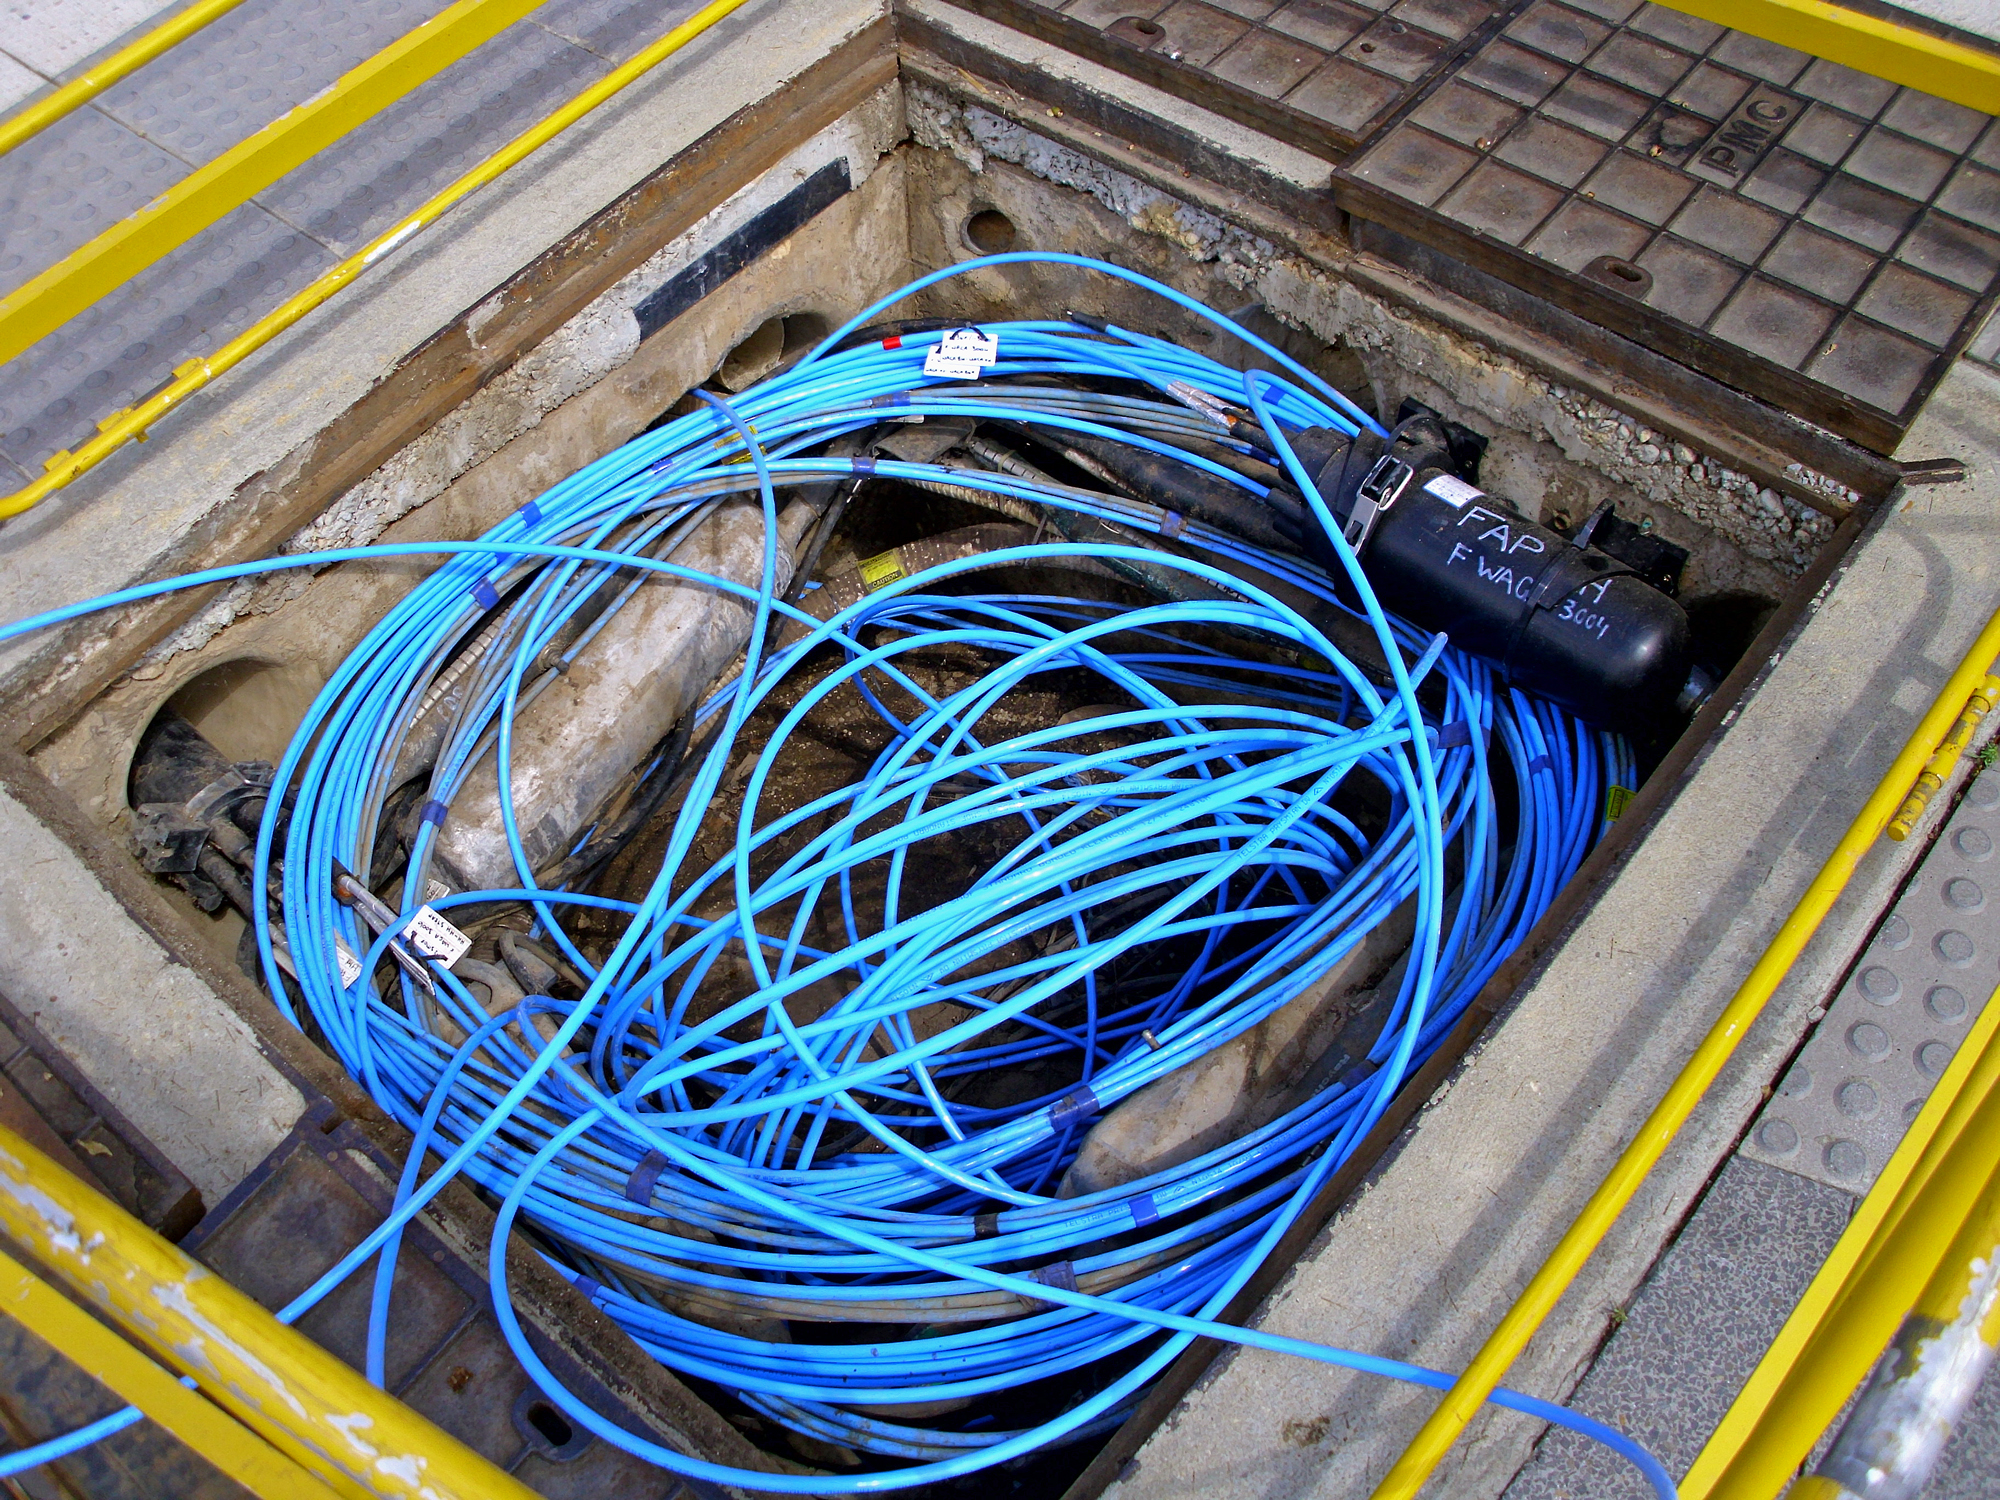 Nar Design Information Technology And Business Solutions Wiring House For Nbn Fibre Optic Cable In A Telstra Pit